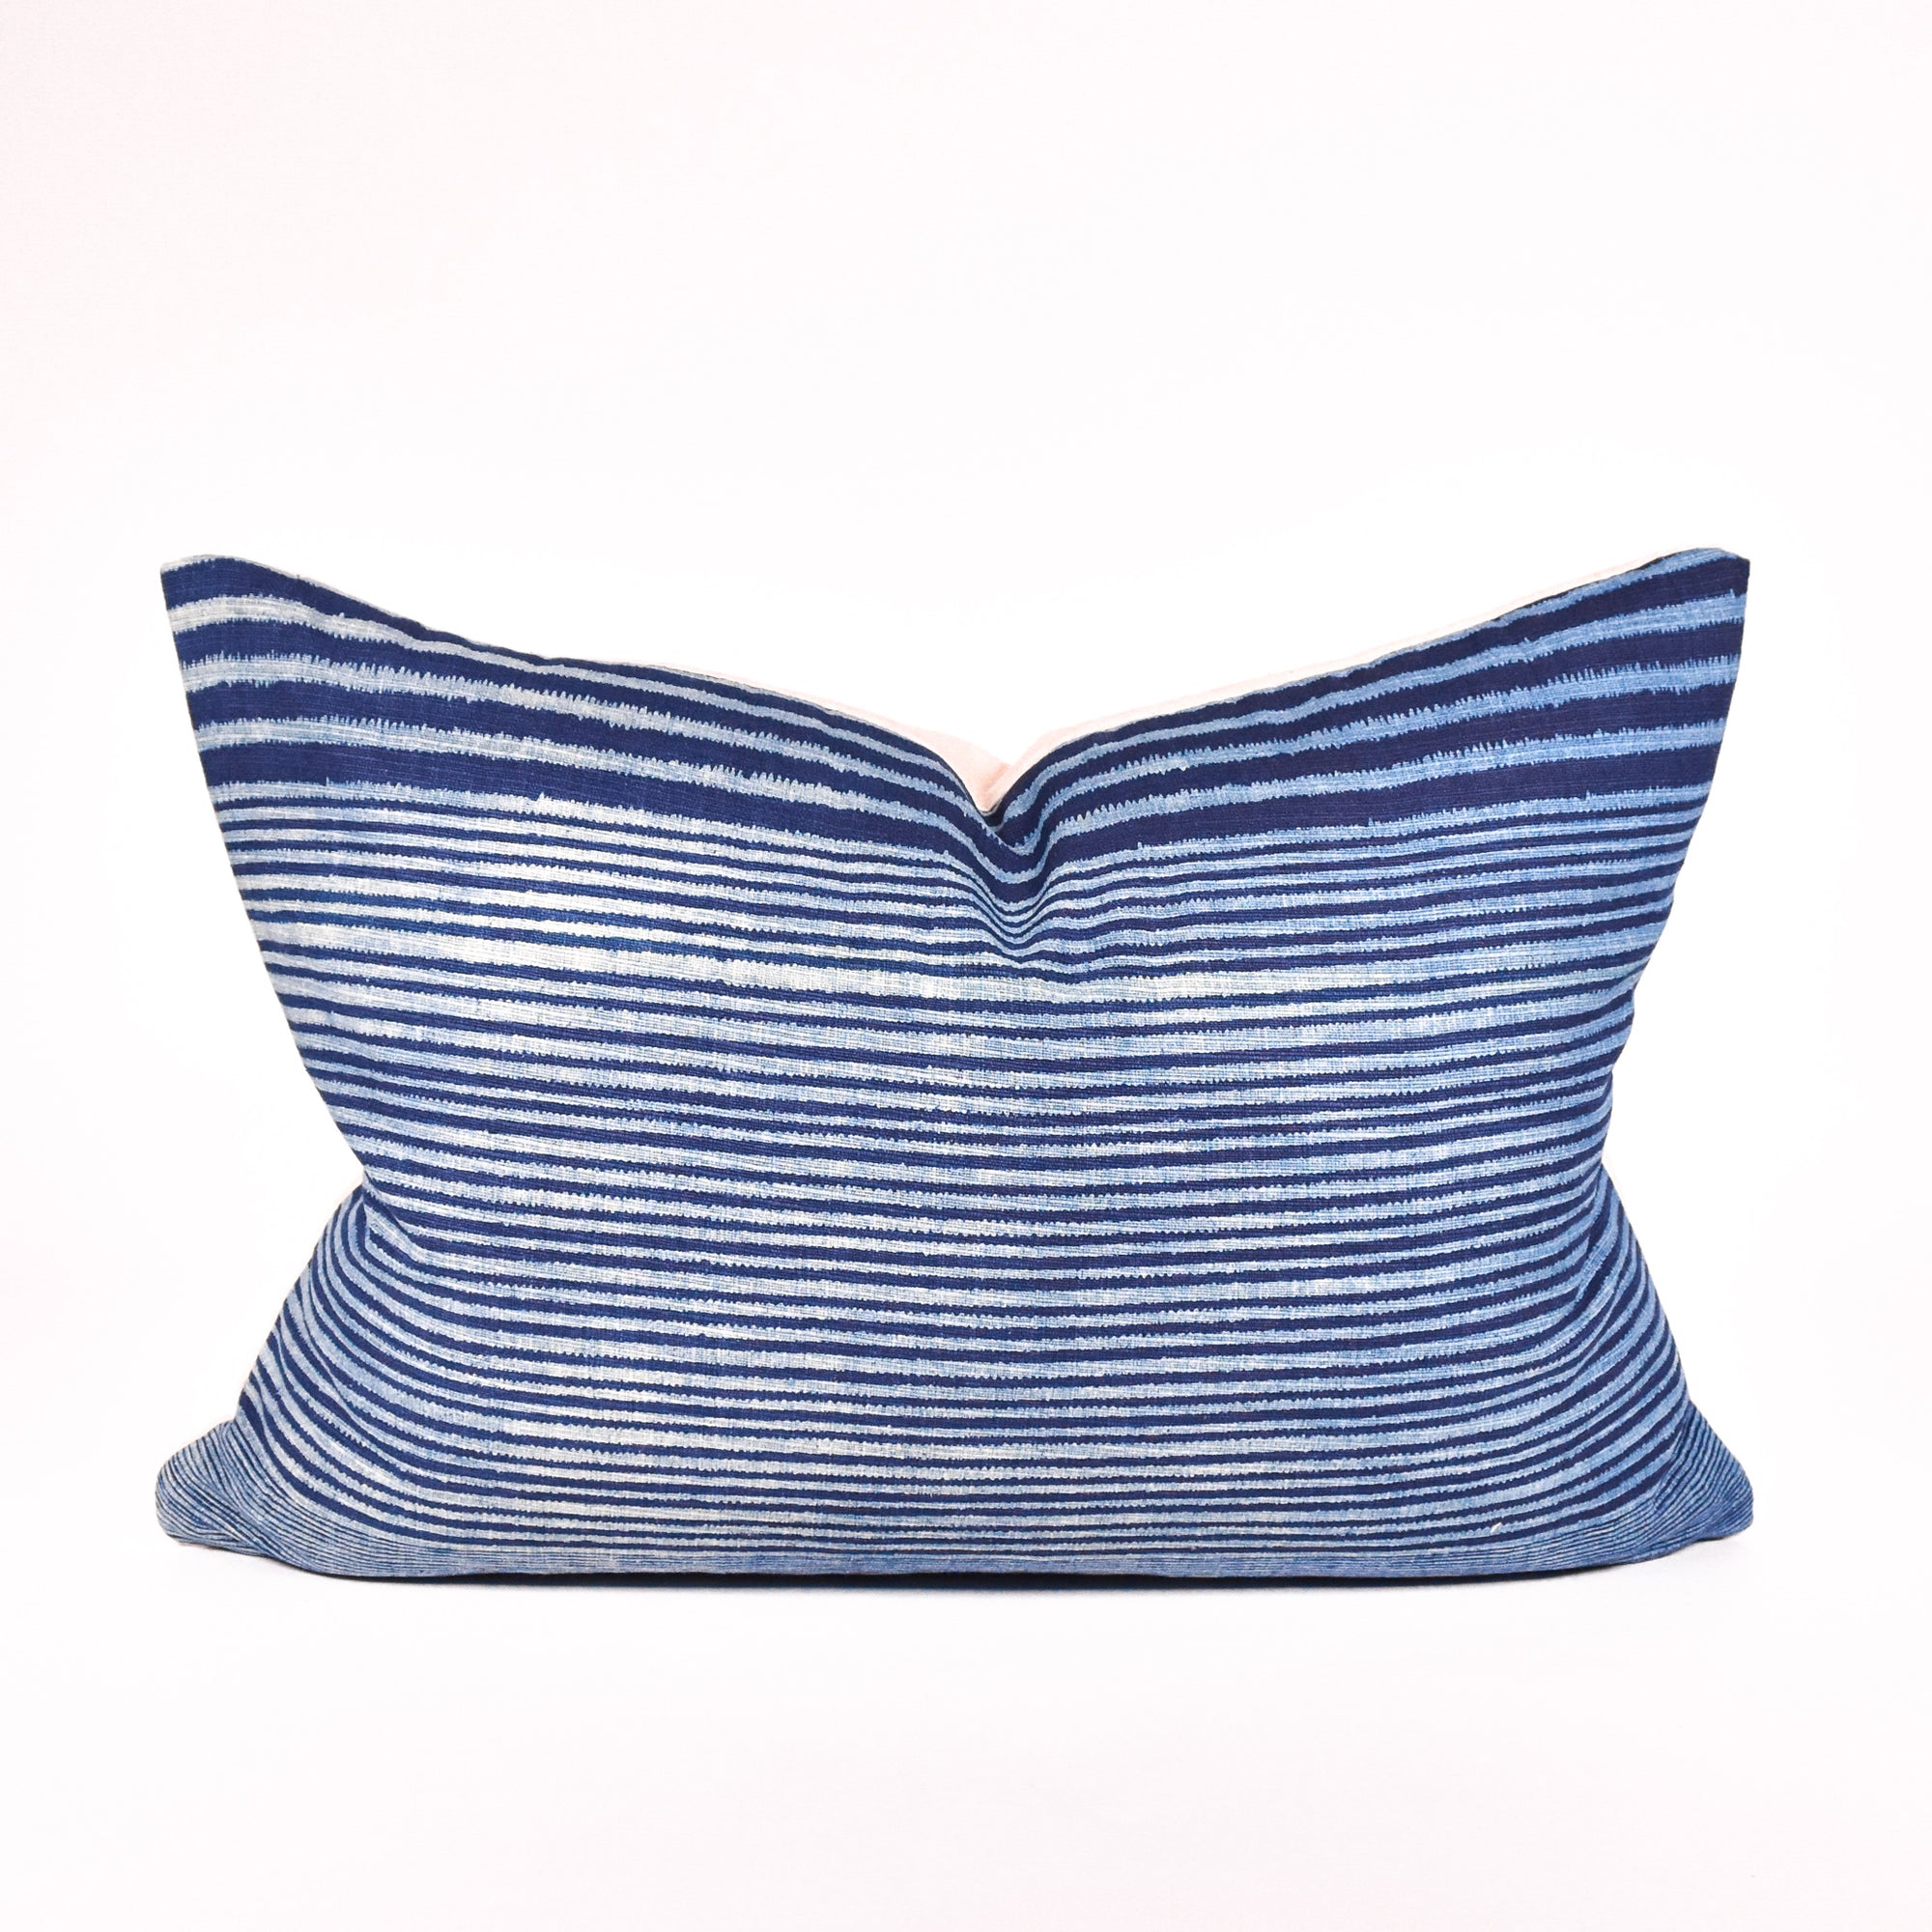 Rainy Indigo Pillow